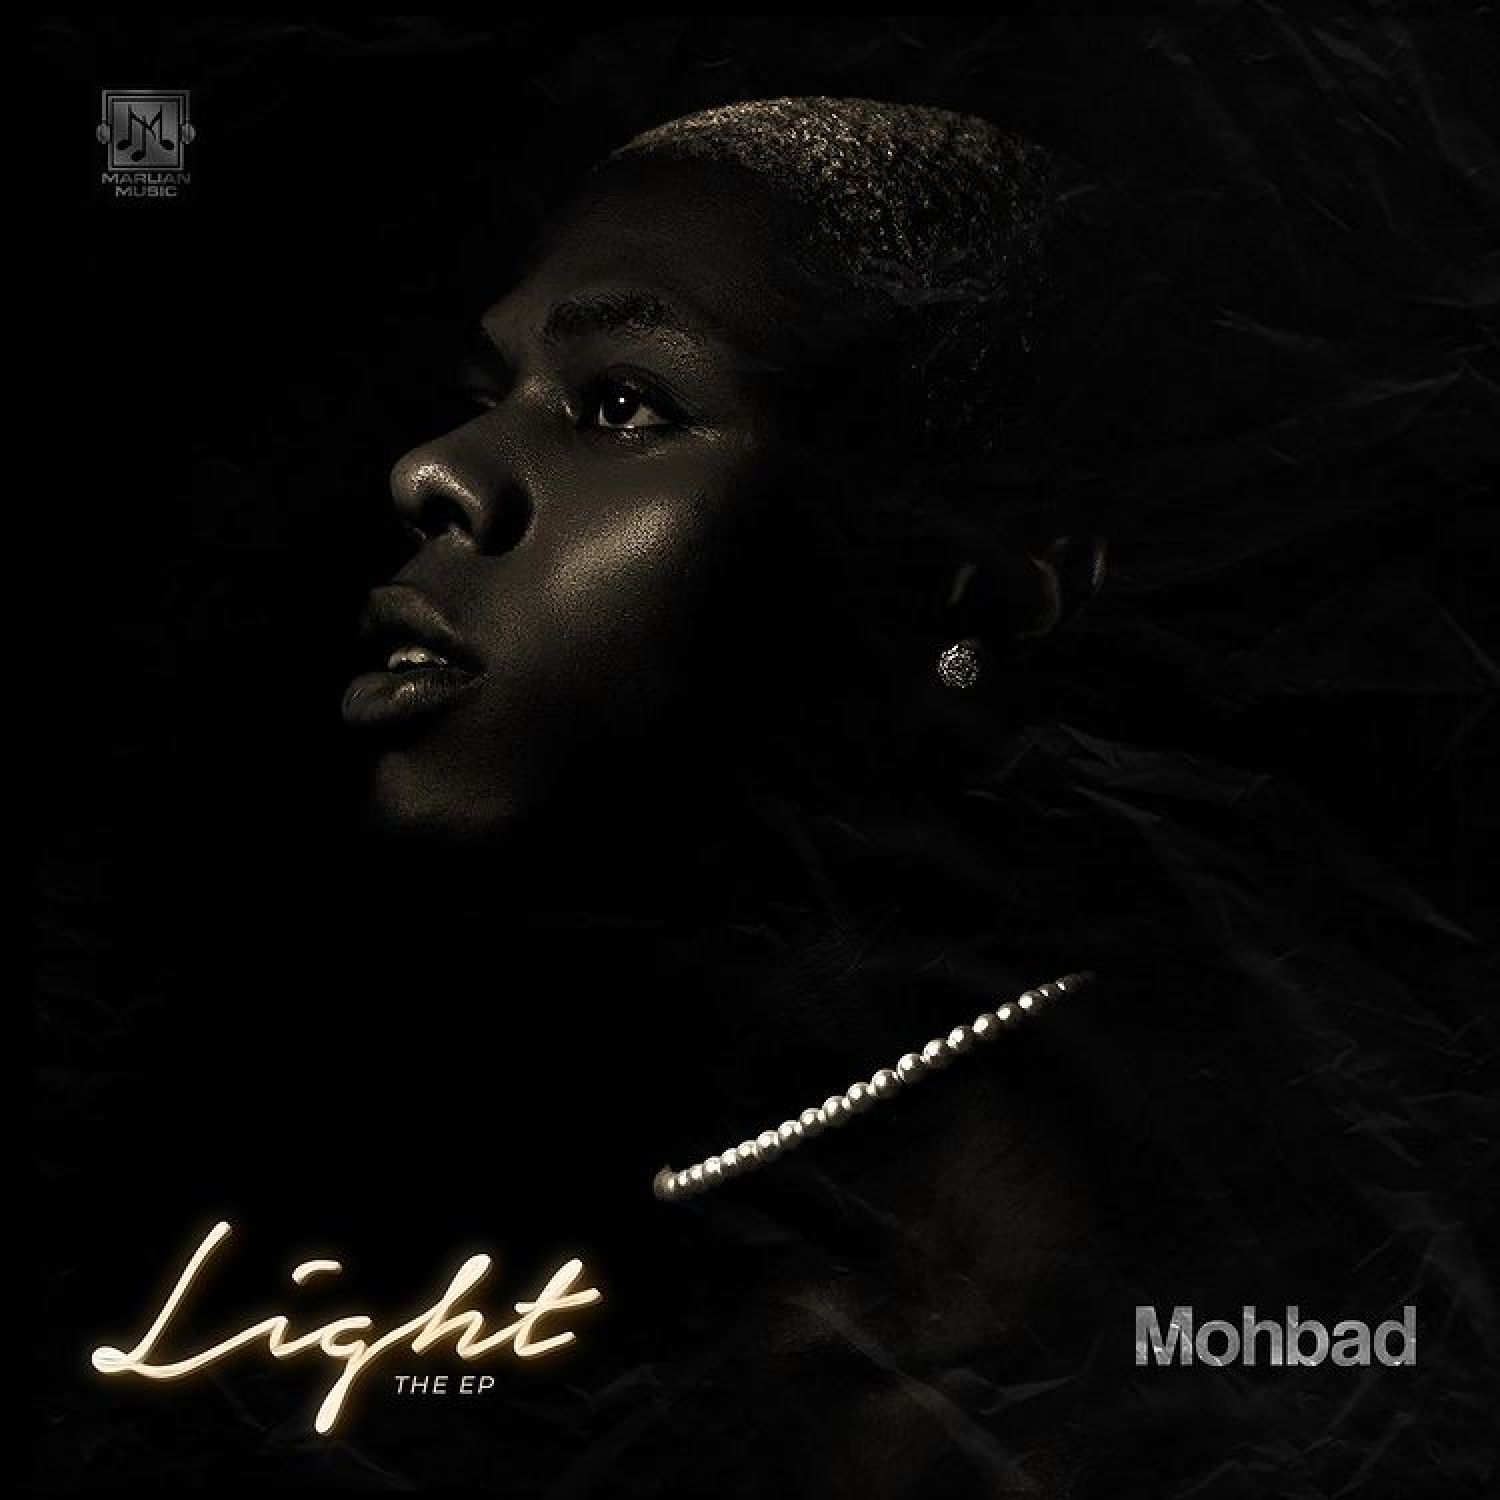 DOWNLOAD MP3: Mohbad ft. Davido – Once Debe (Free MP3) AUDIO 320kbps